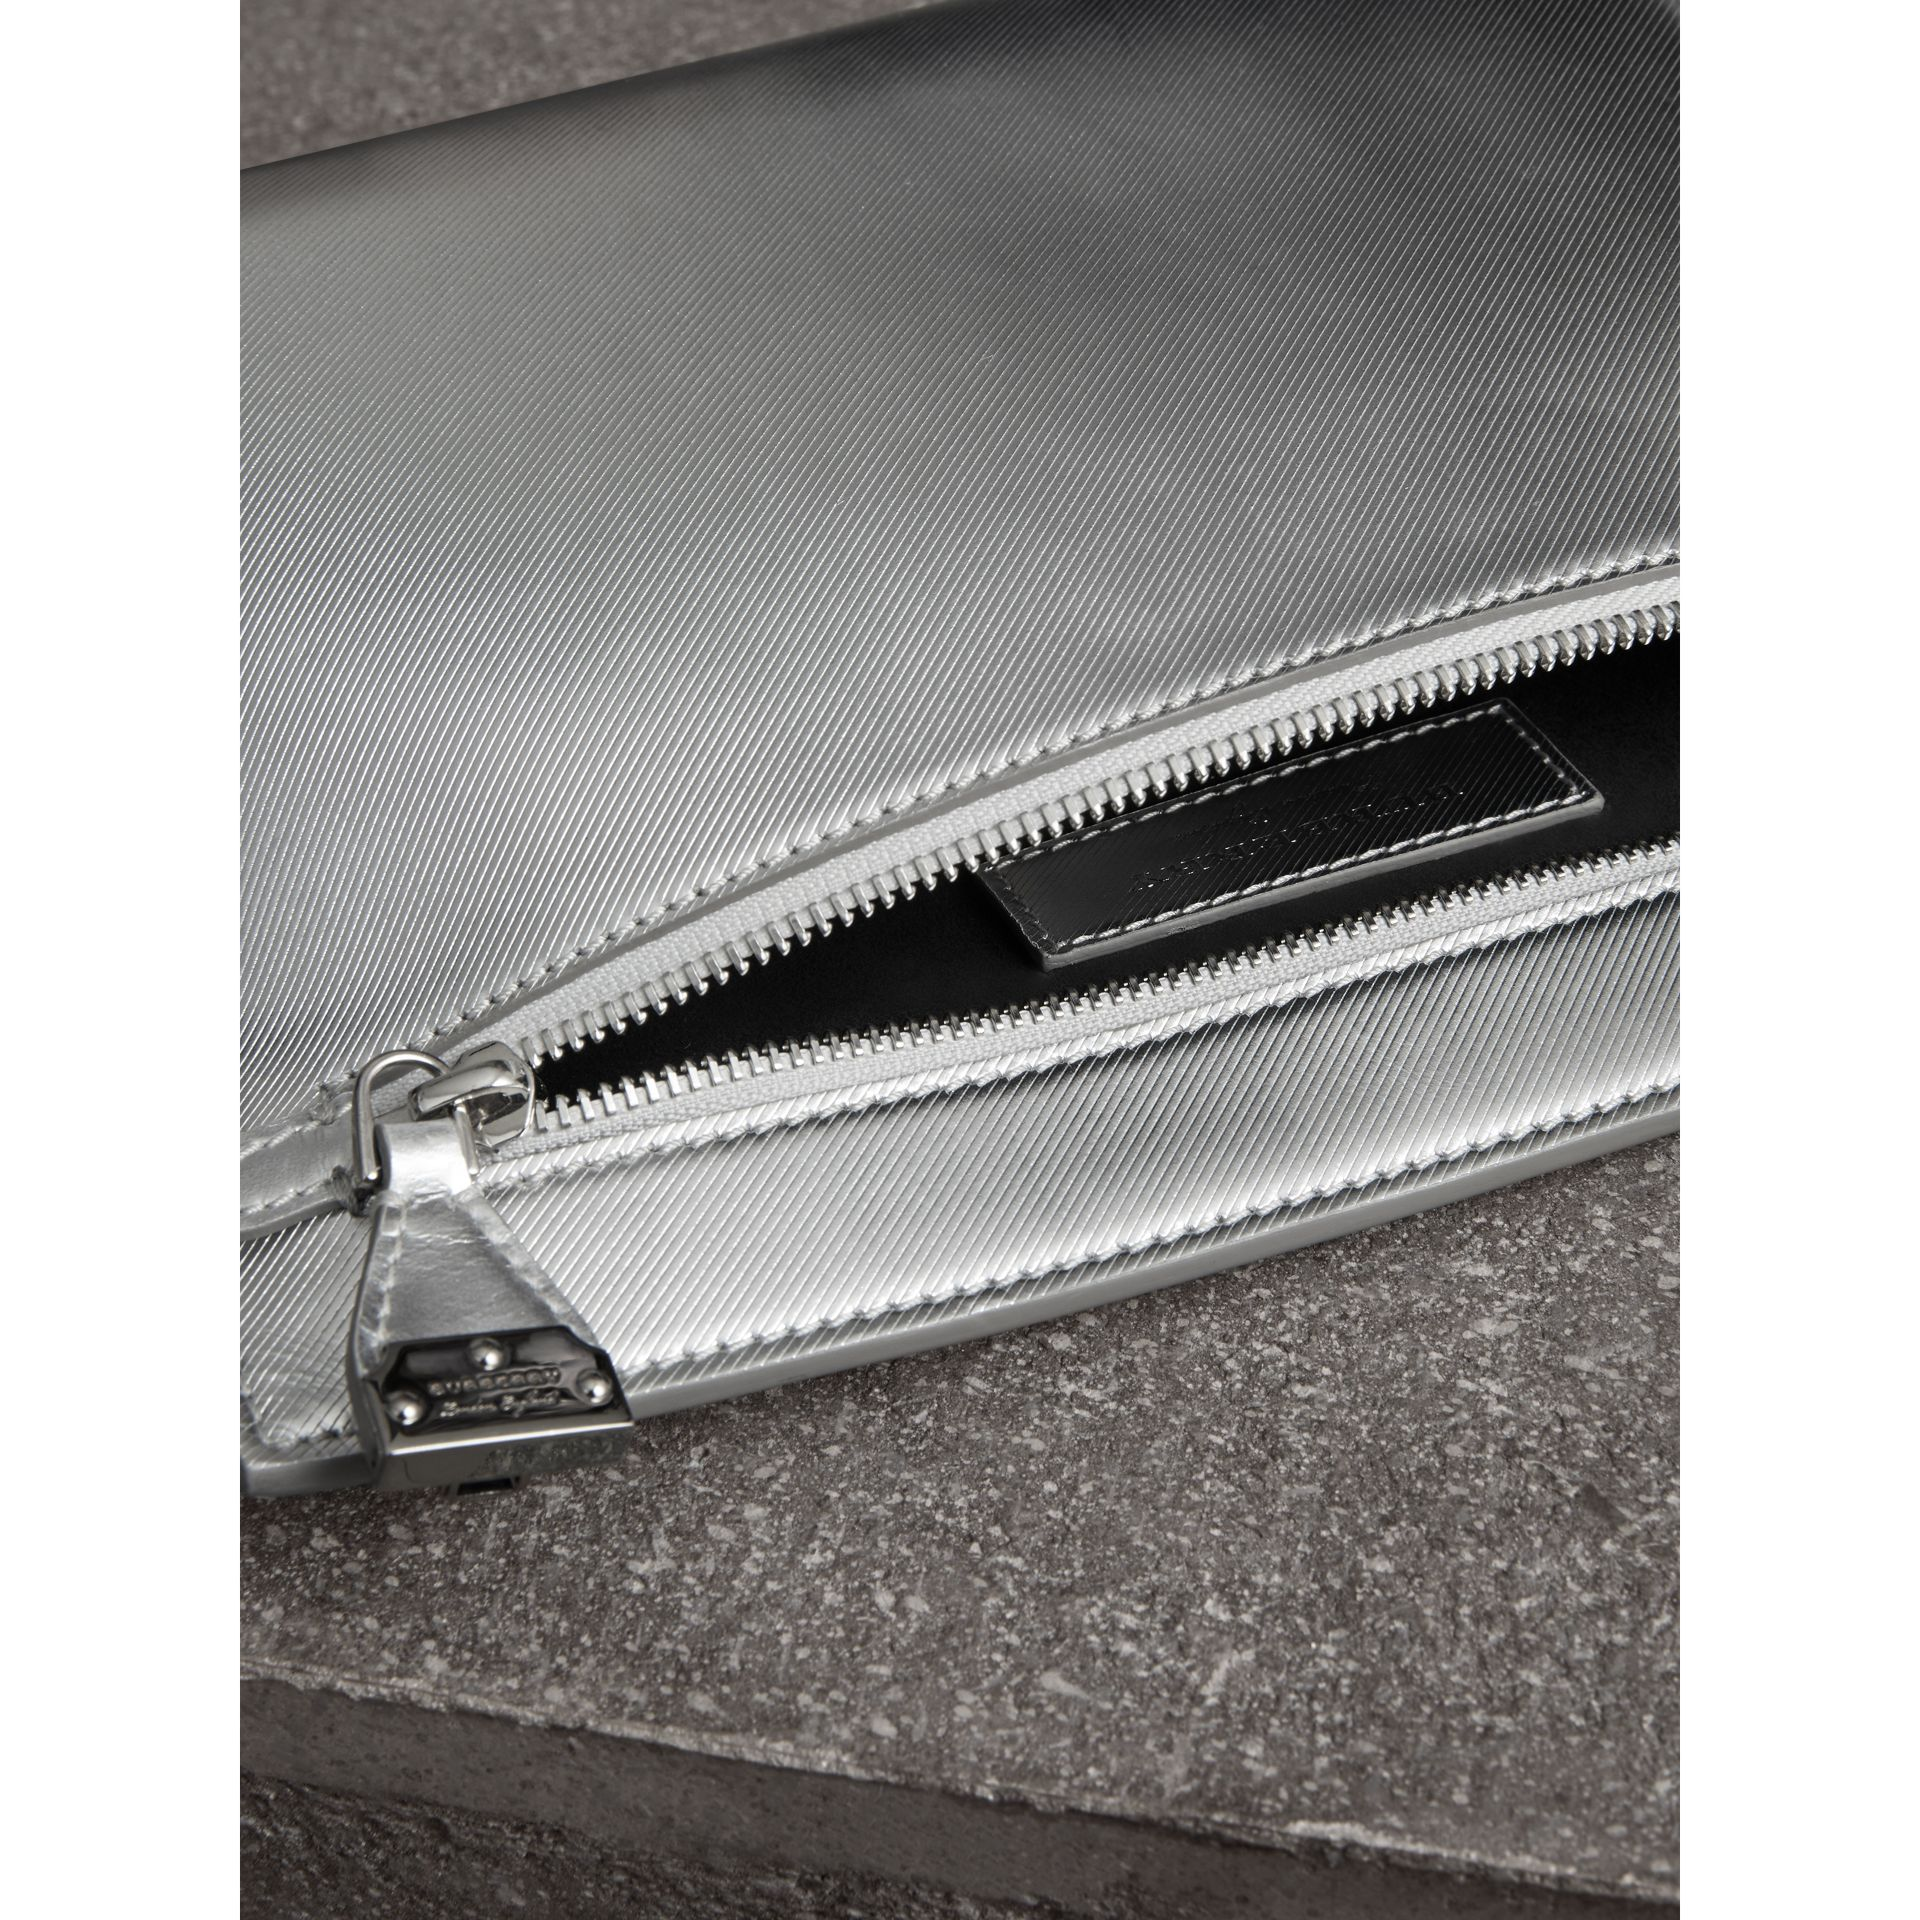 Metallic Trench Leather Pouch in Silver - Women | Burberry - gallery image 4